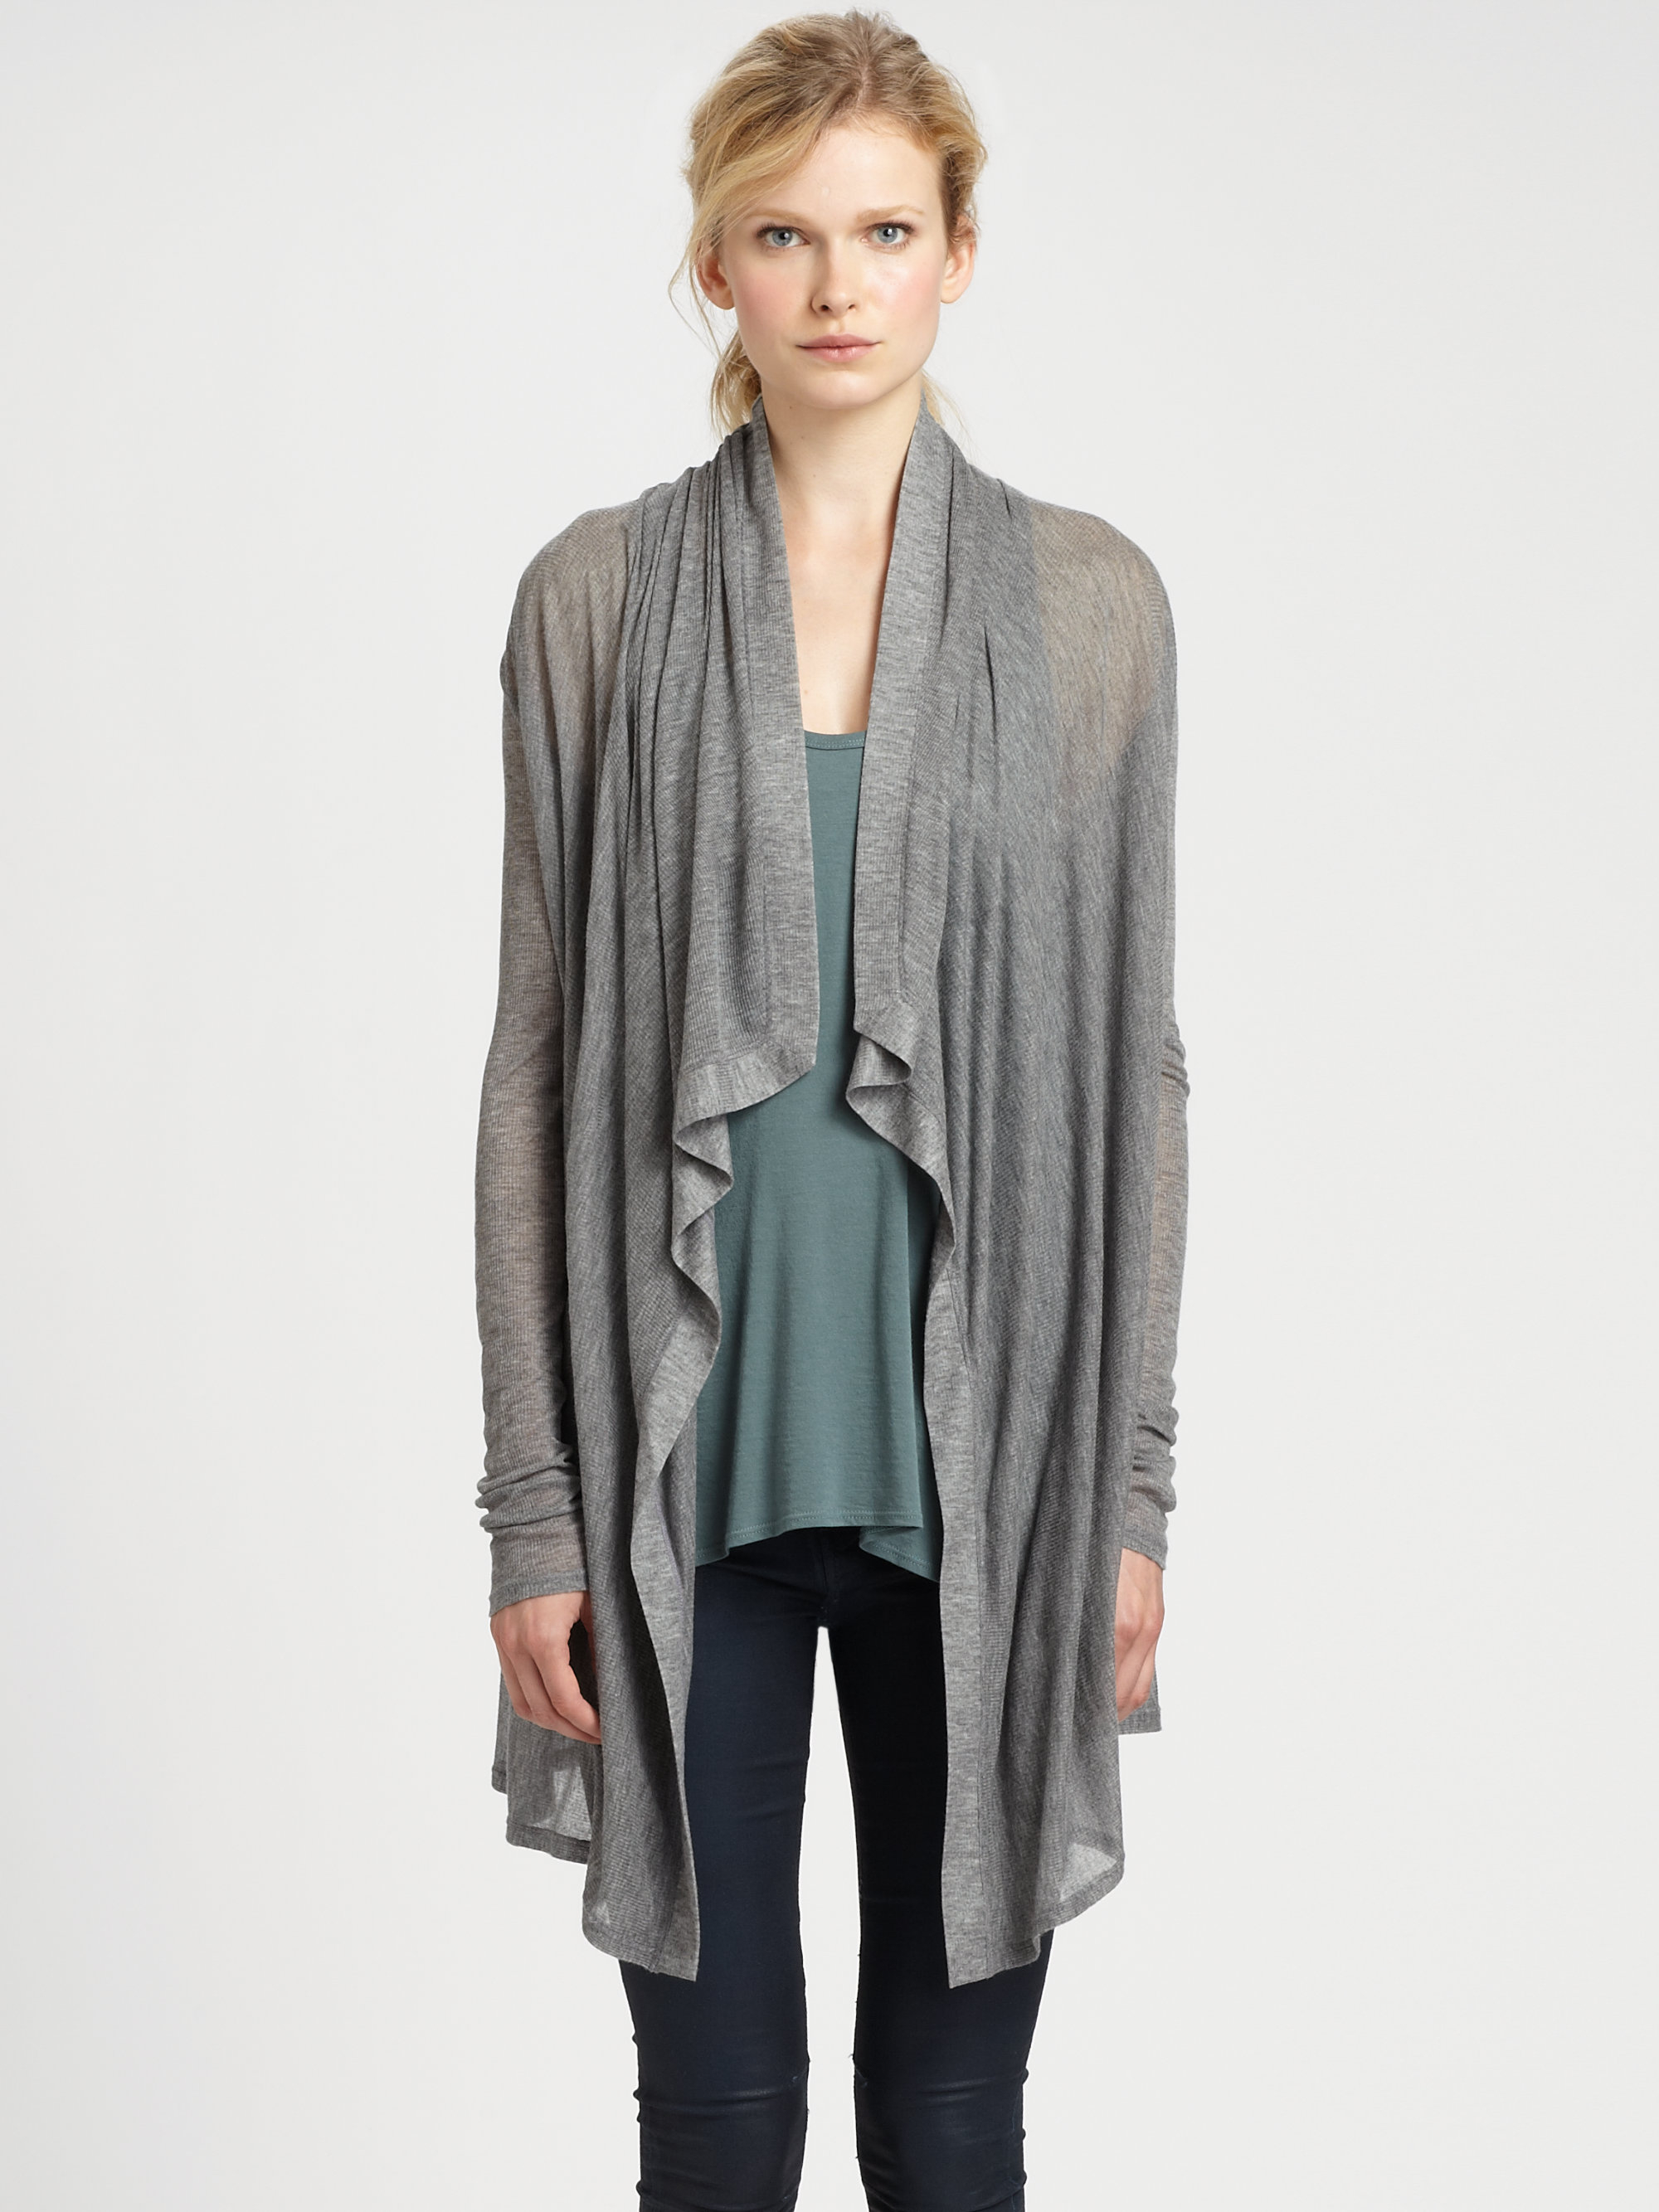 Helmut lang Voltage Draped Cardigan in Gray | Lyst